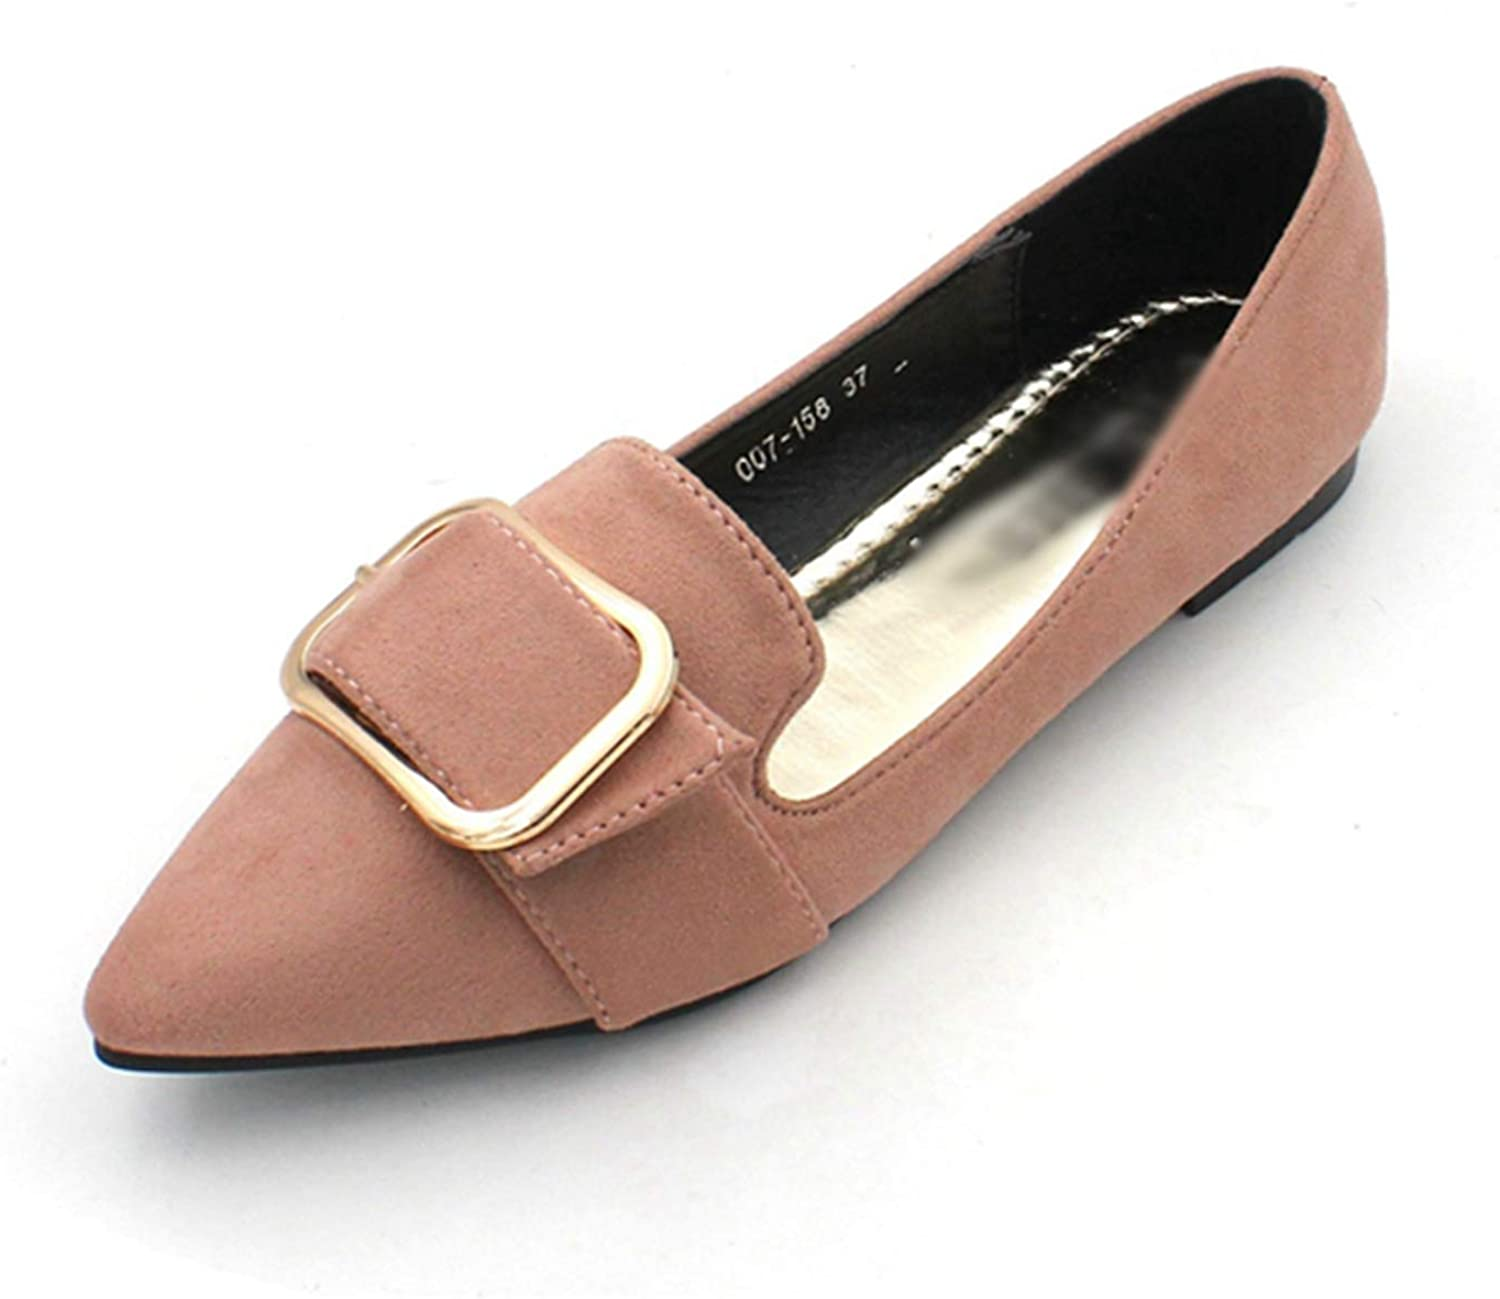 Kyle Walsh Pa Women Casual Flats shoes Ladies Slip-on Soft Office Working Moccasins